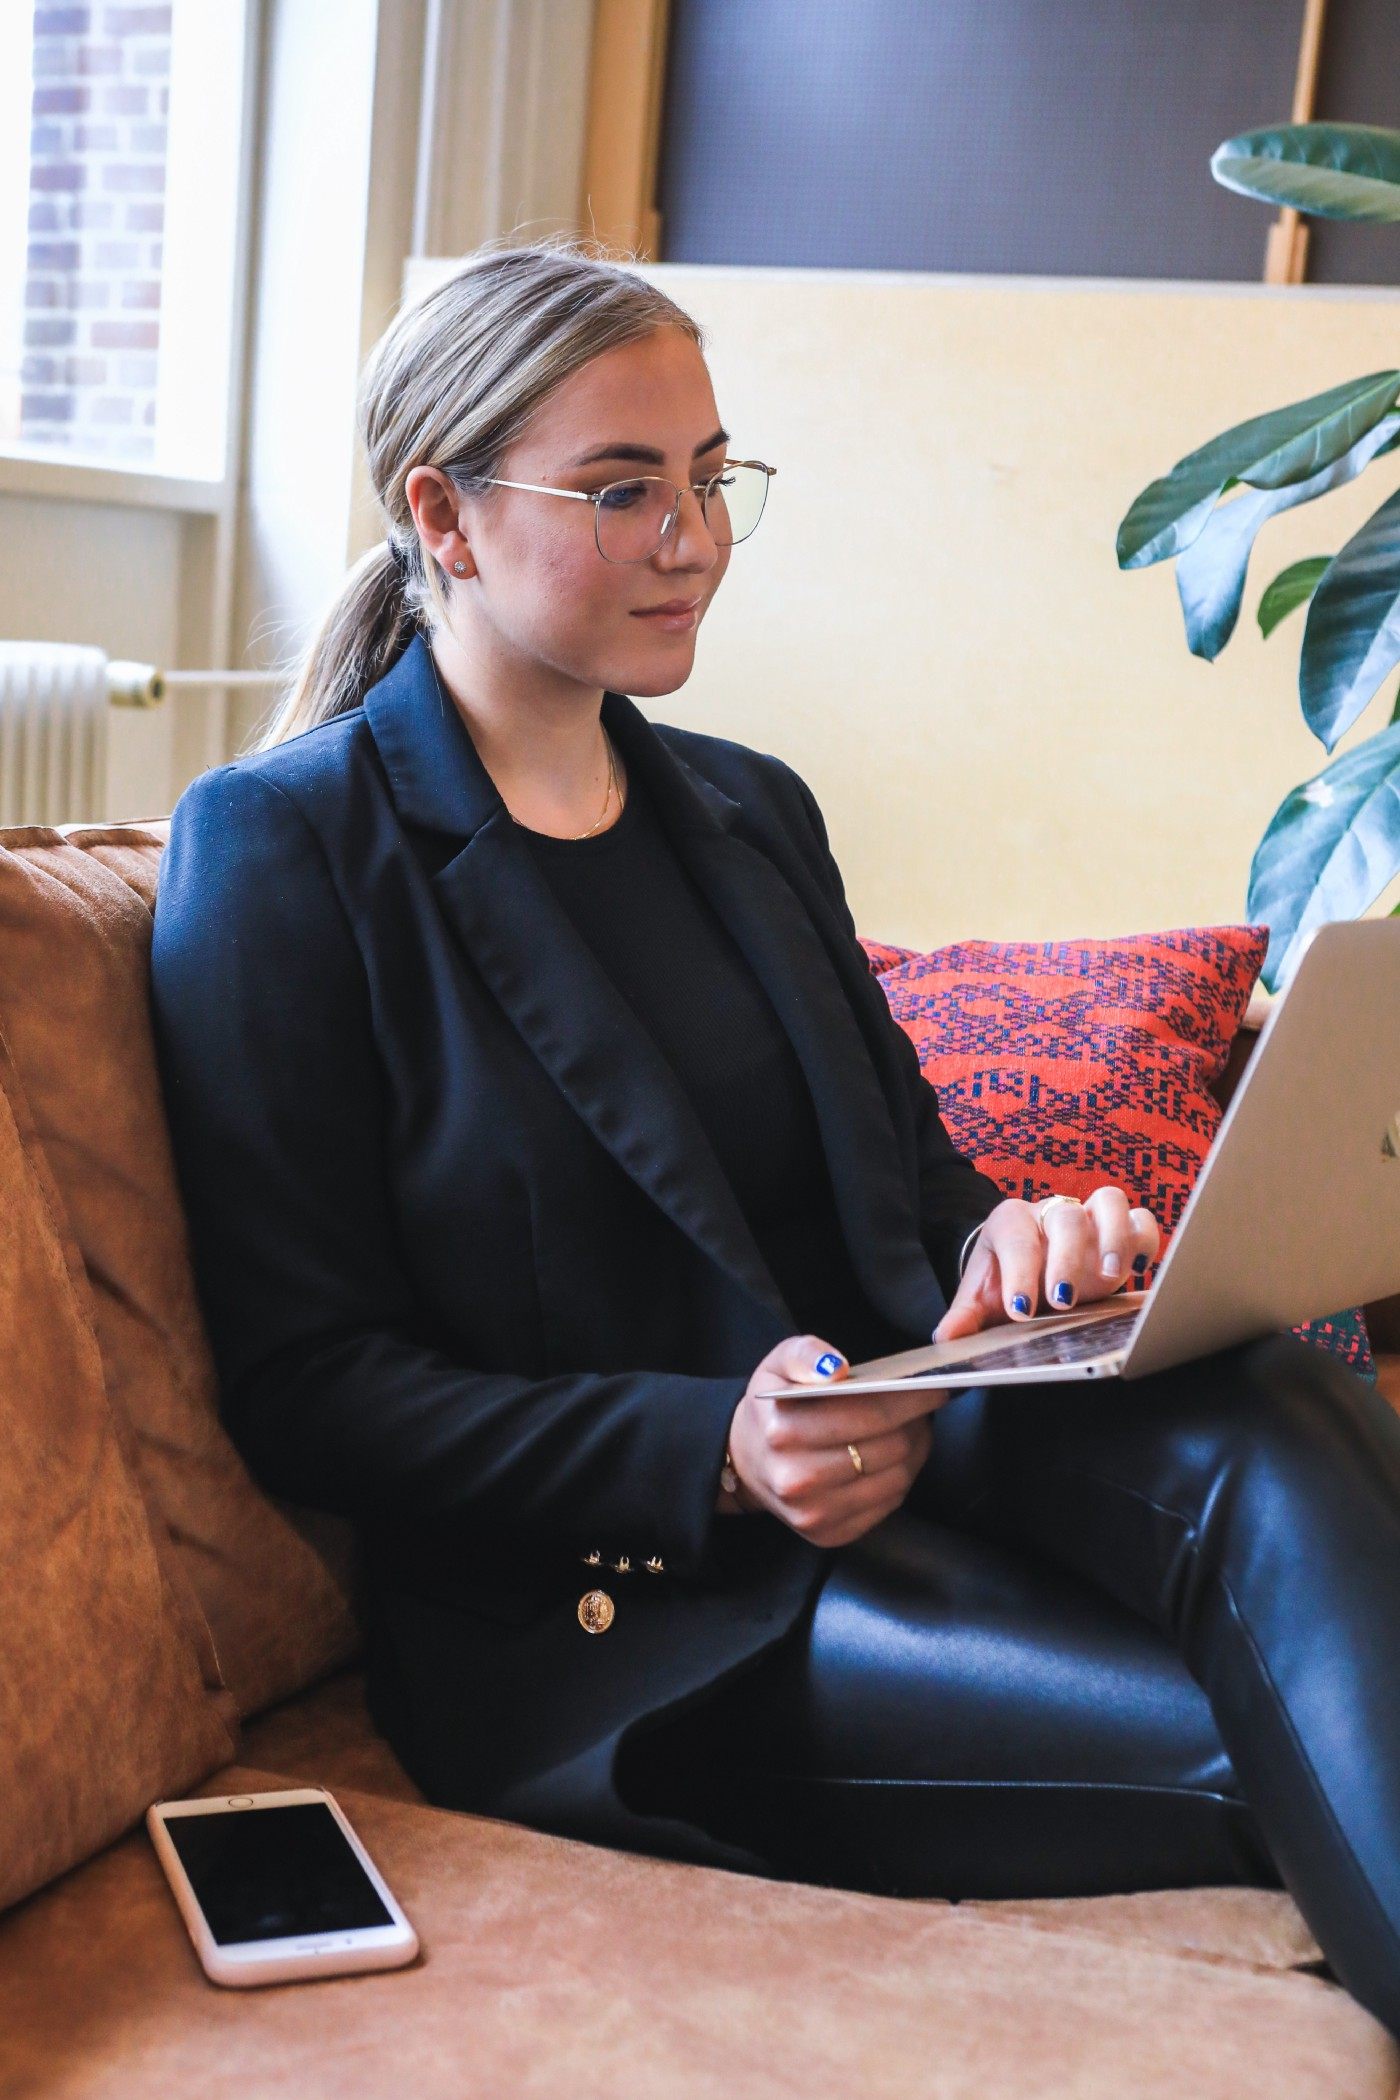 Women looking a computer with ad from woman wholesaler trying to sell a house